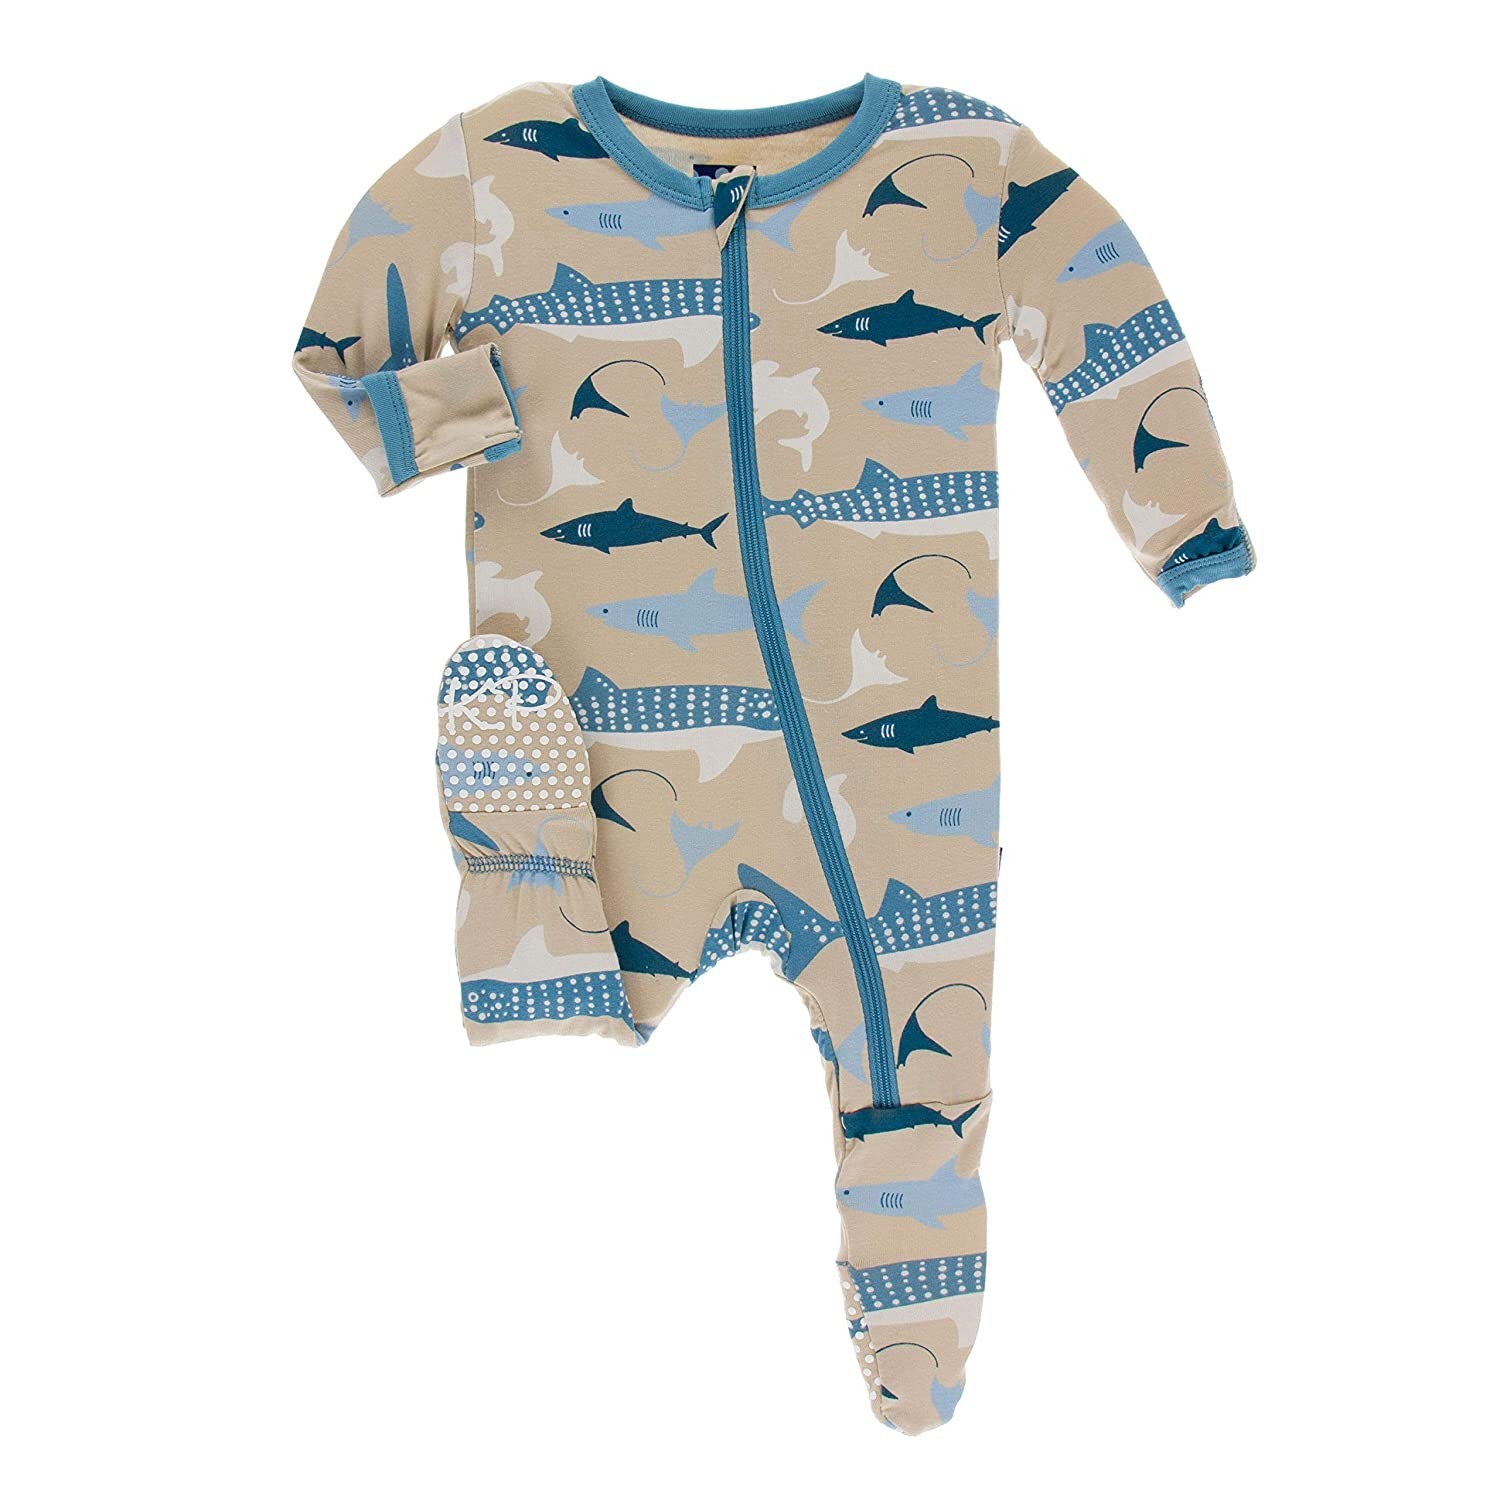 KicKee Pants Print Footie with Zipper (9-12 Months, Burlap Sharks)